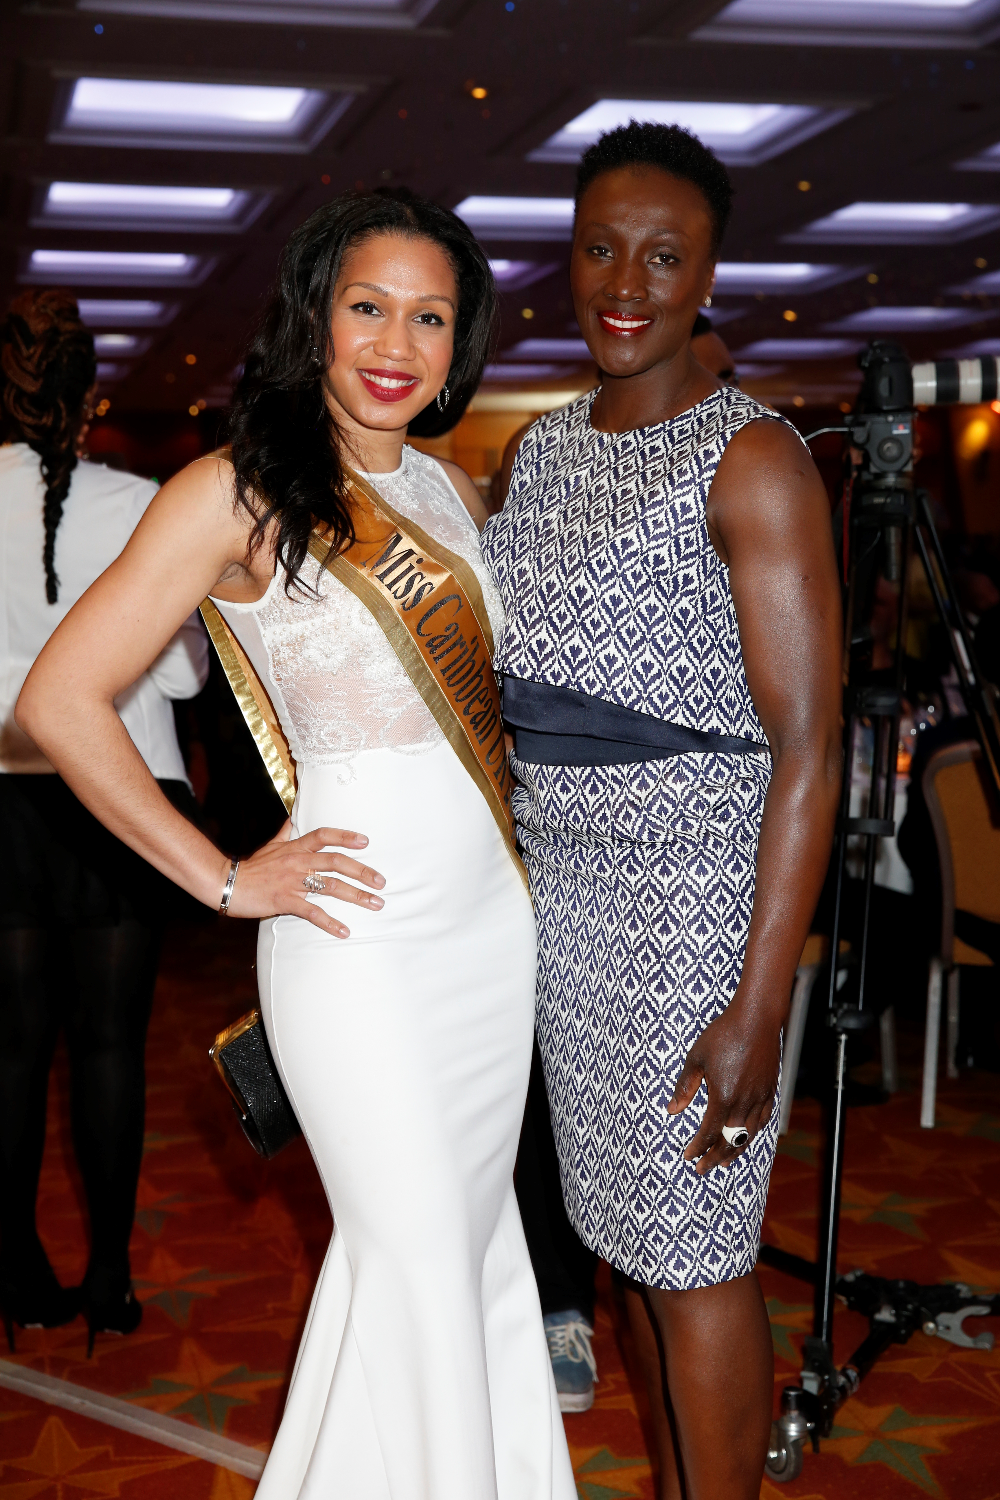 Amy Harris-Willock with Jac Agyepong (Olympic athlete)